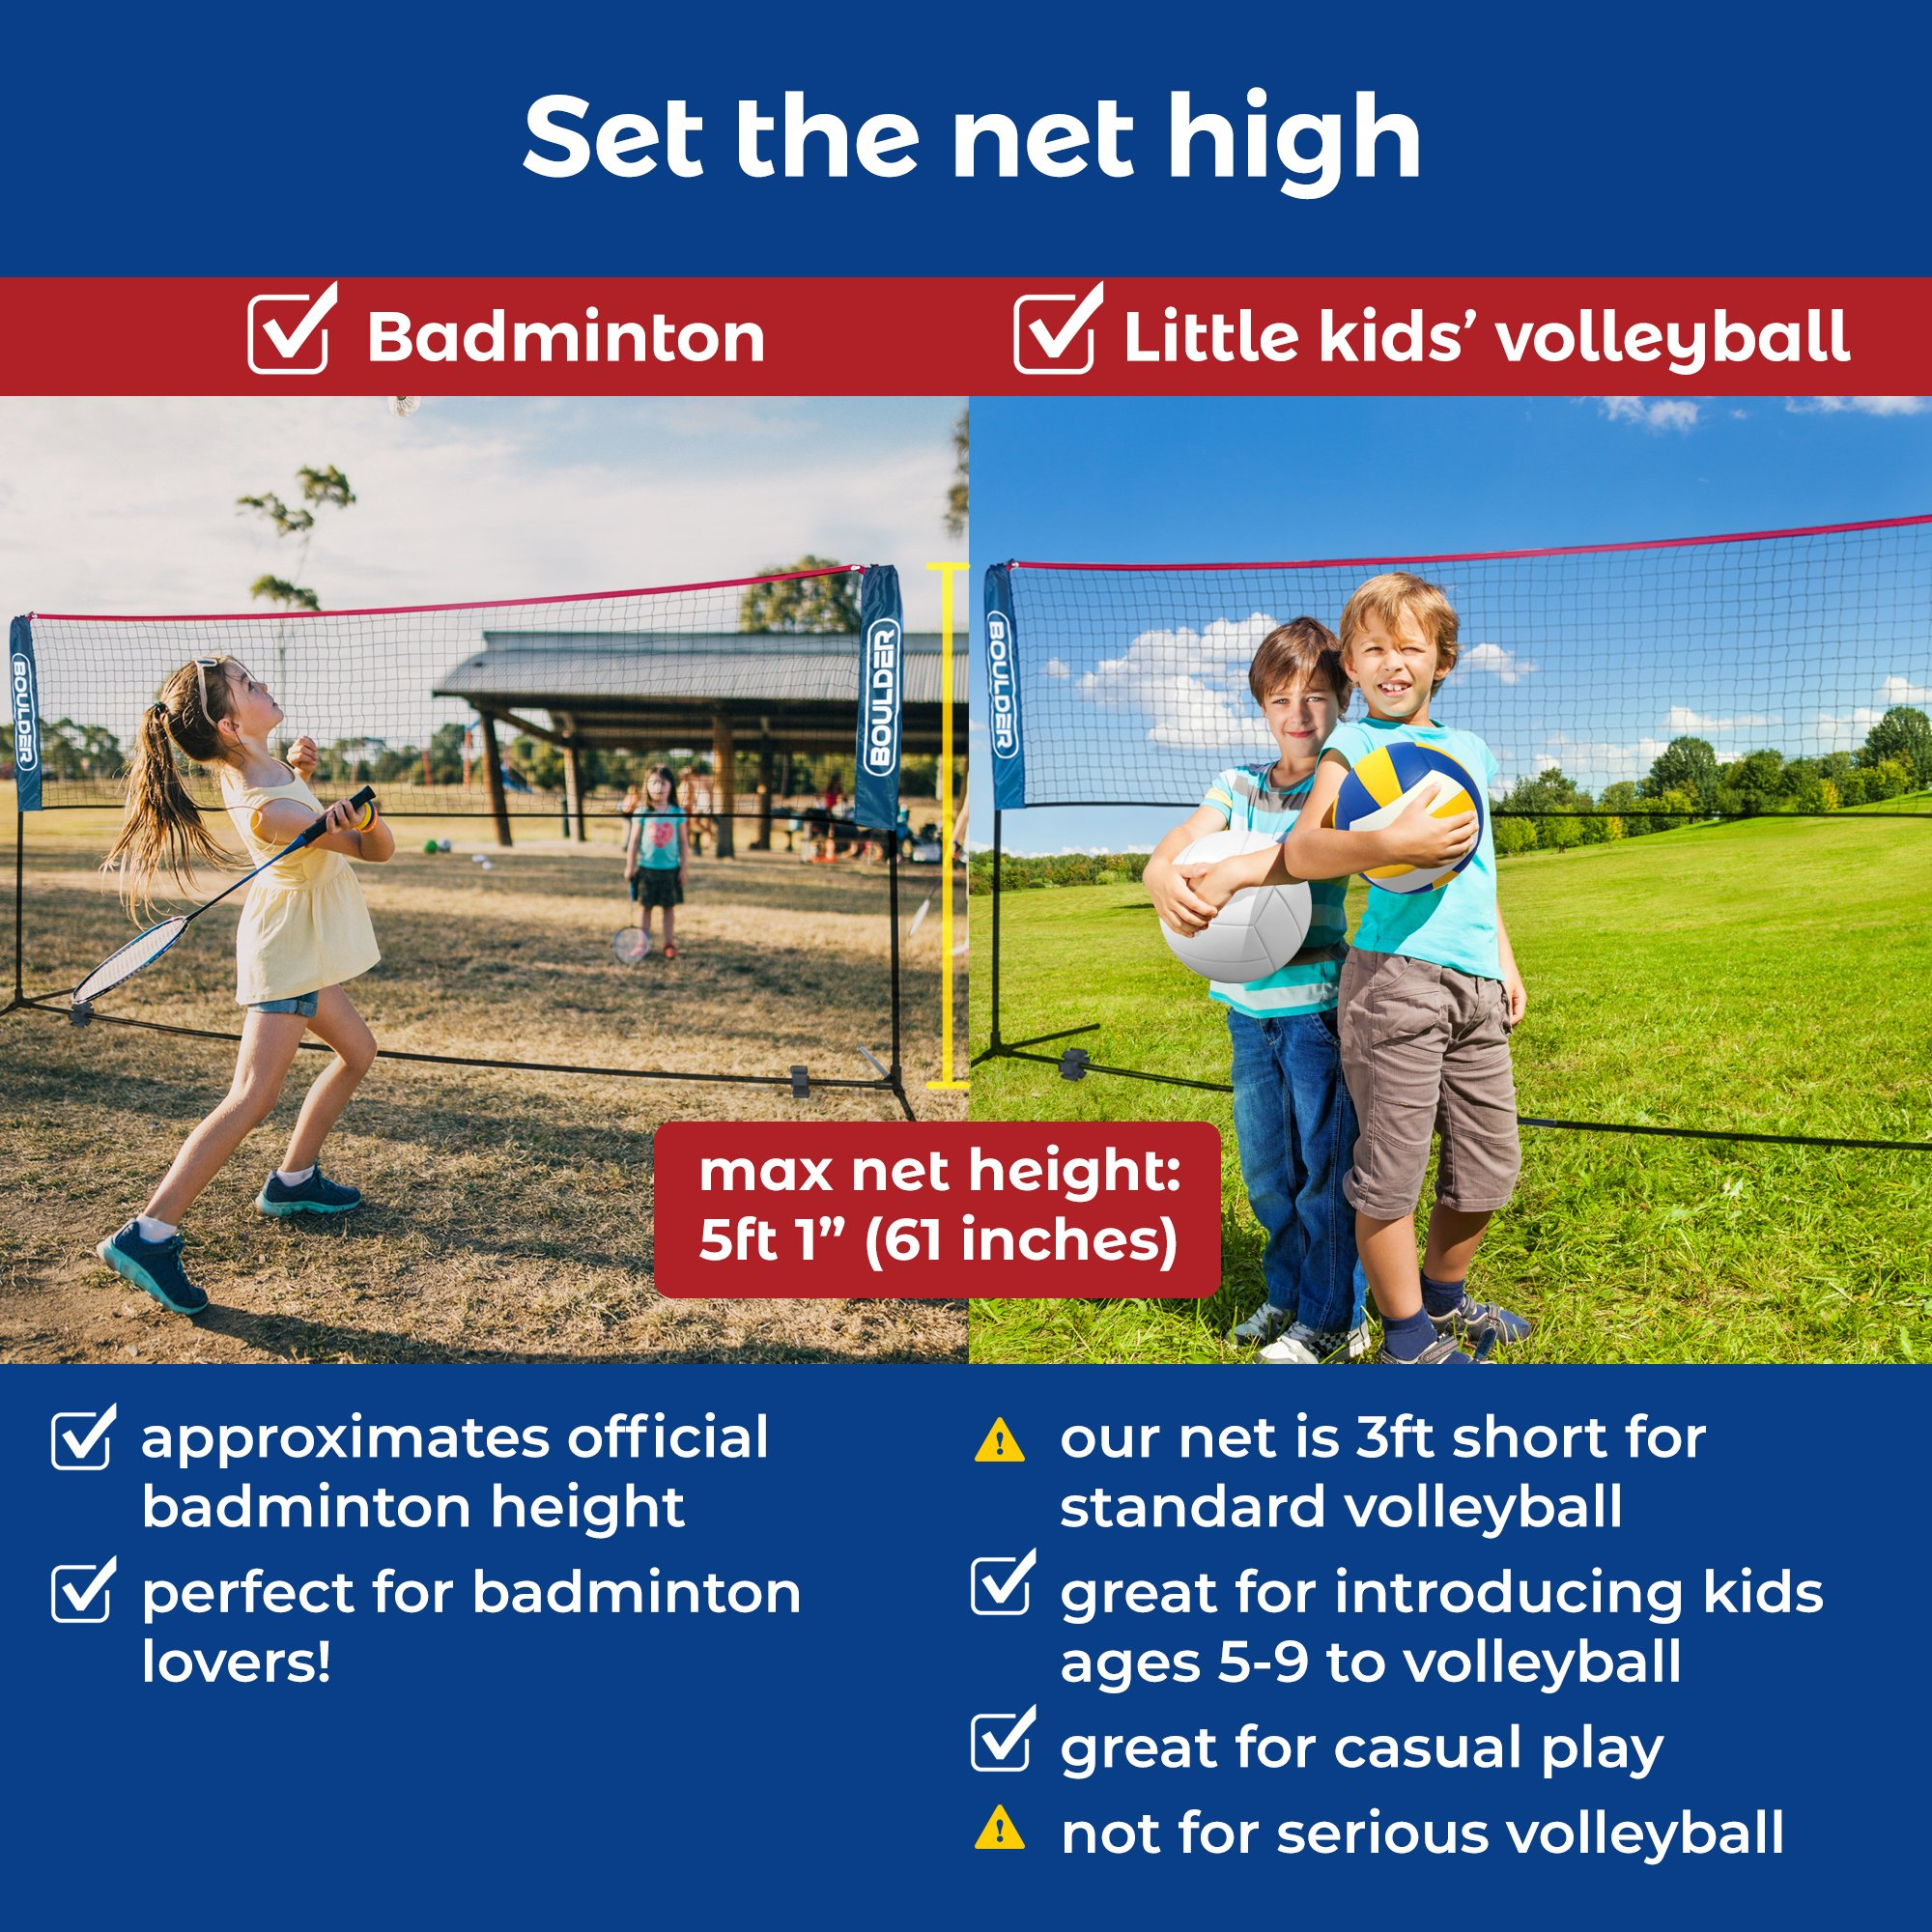 Boulder Portable Badminton Net Set - 10-Ft Net for Tennis, Soccer Tennis, Pickleball, Kids Volleyball - Easy Setup Nylon Sports Net with Poles - for Indoor or Outdoor Court, Beach, Driveway by Boulder (Image #1)